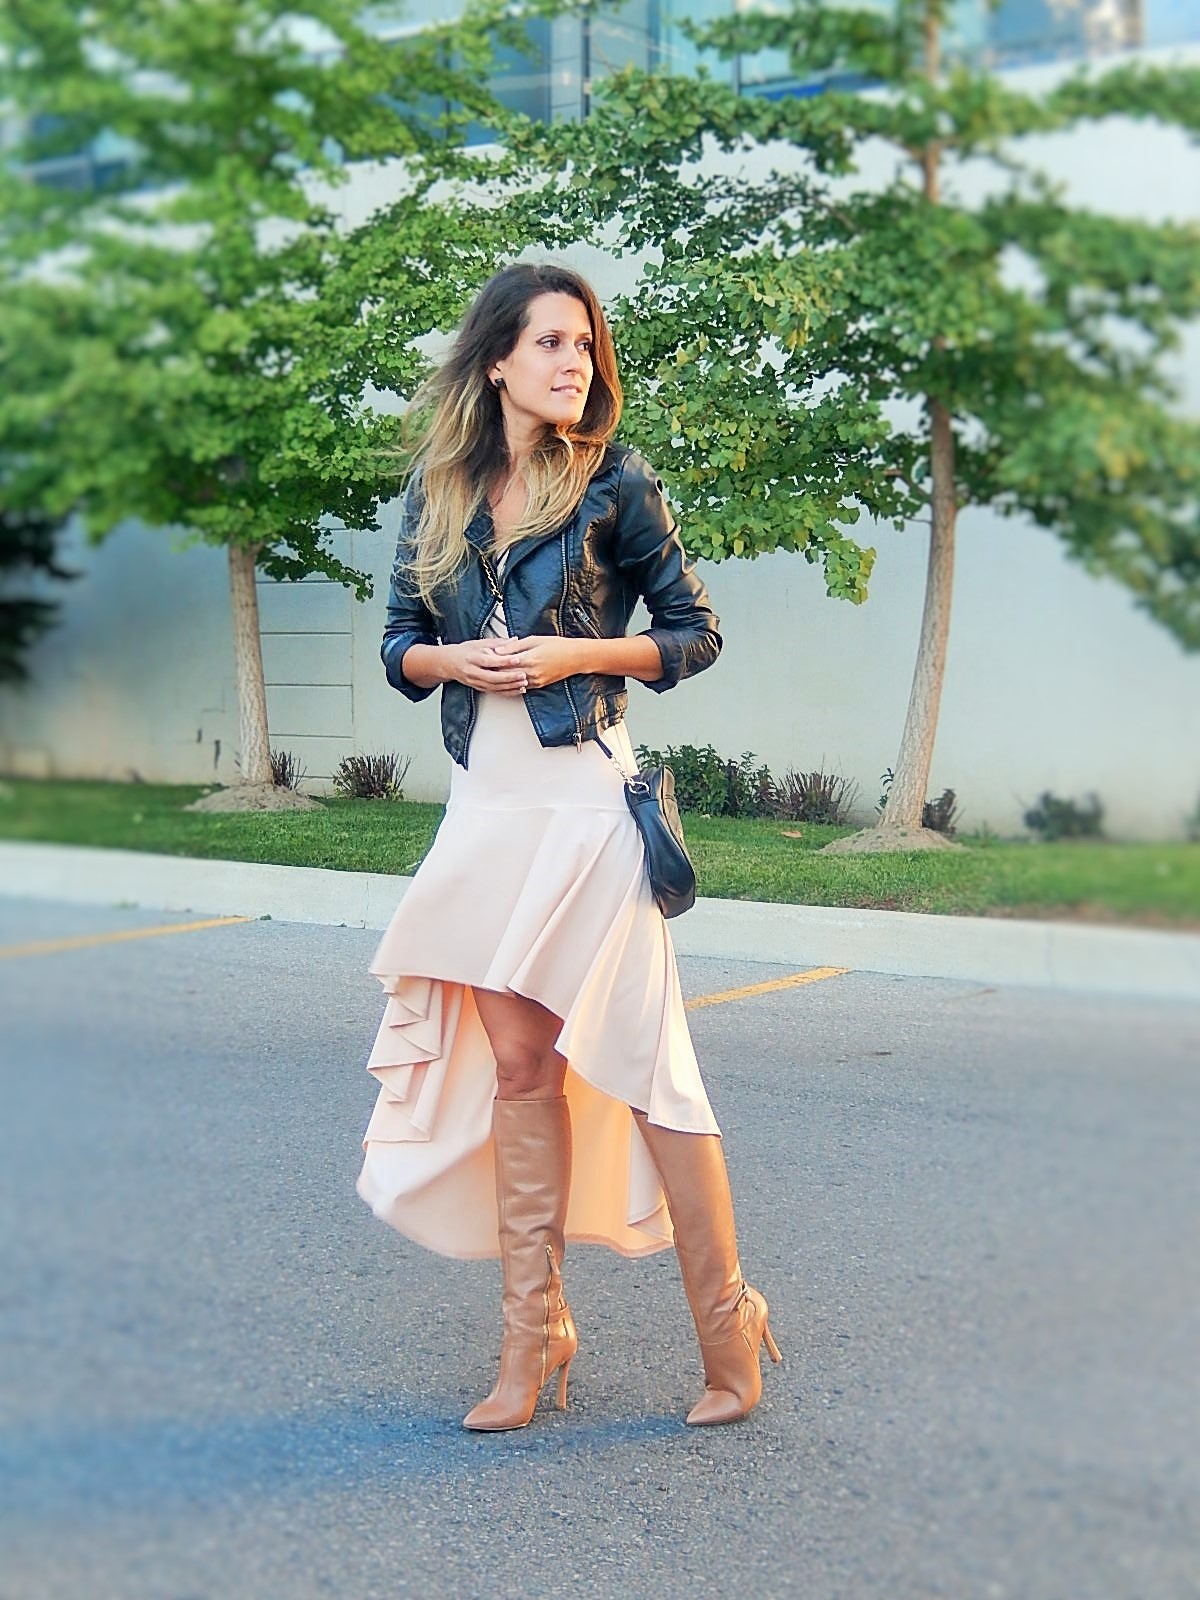 leather jacket outfit idea